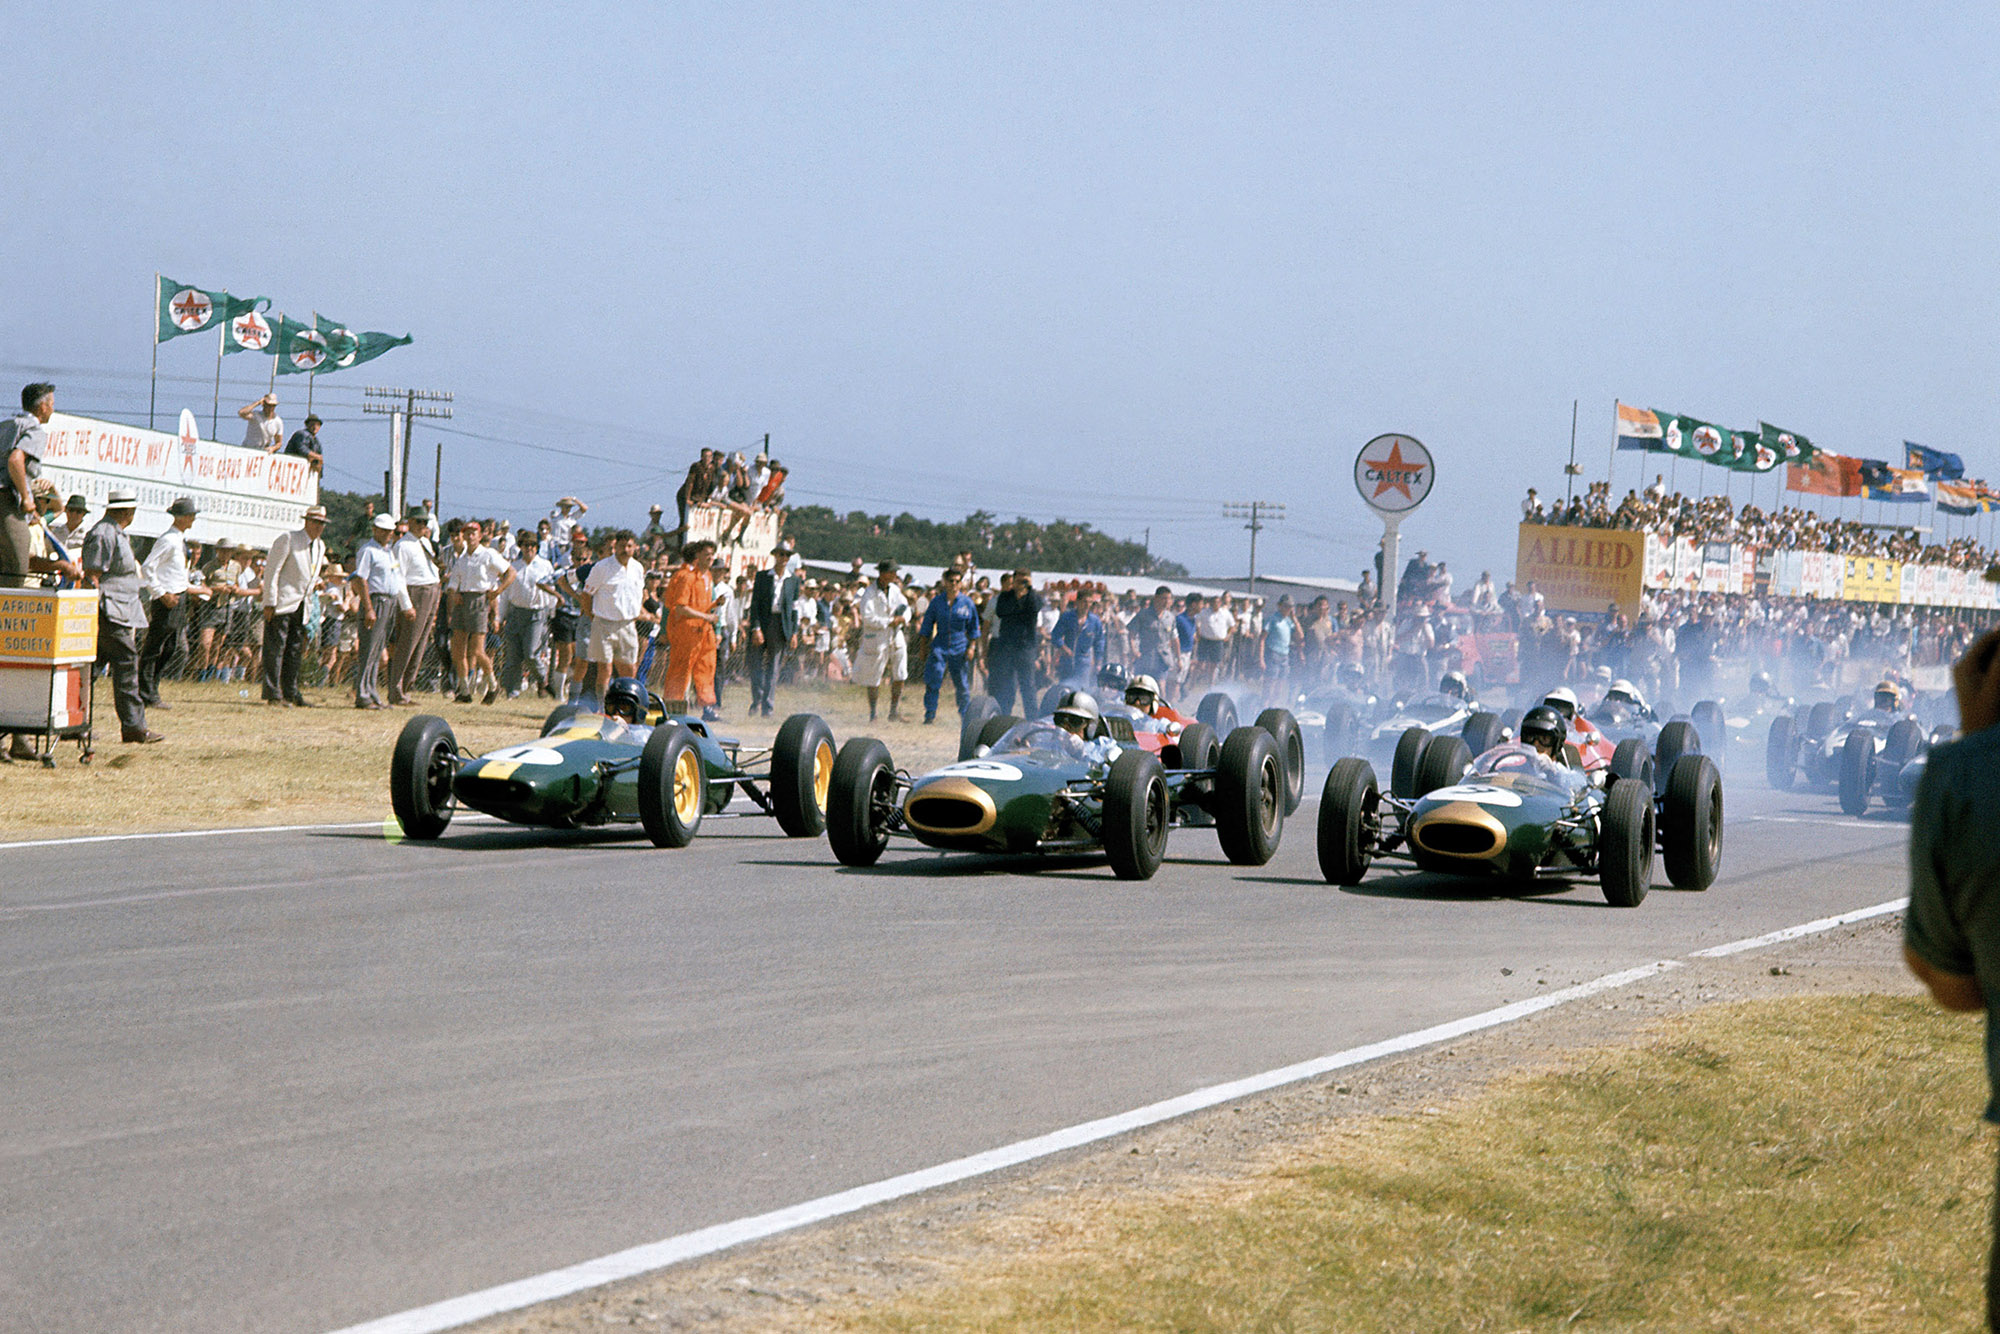 Jim Clark, Jack Brabham and Dan Gurney lead at the start of the 1963 South African Grand Prix